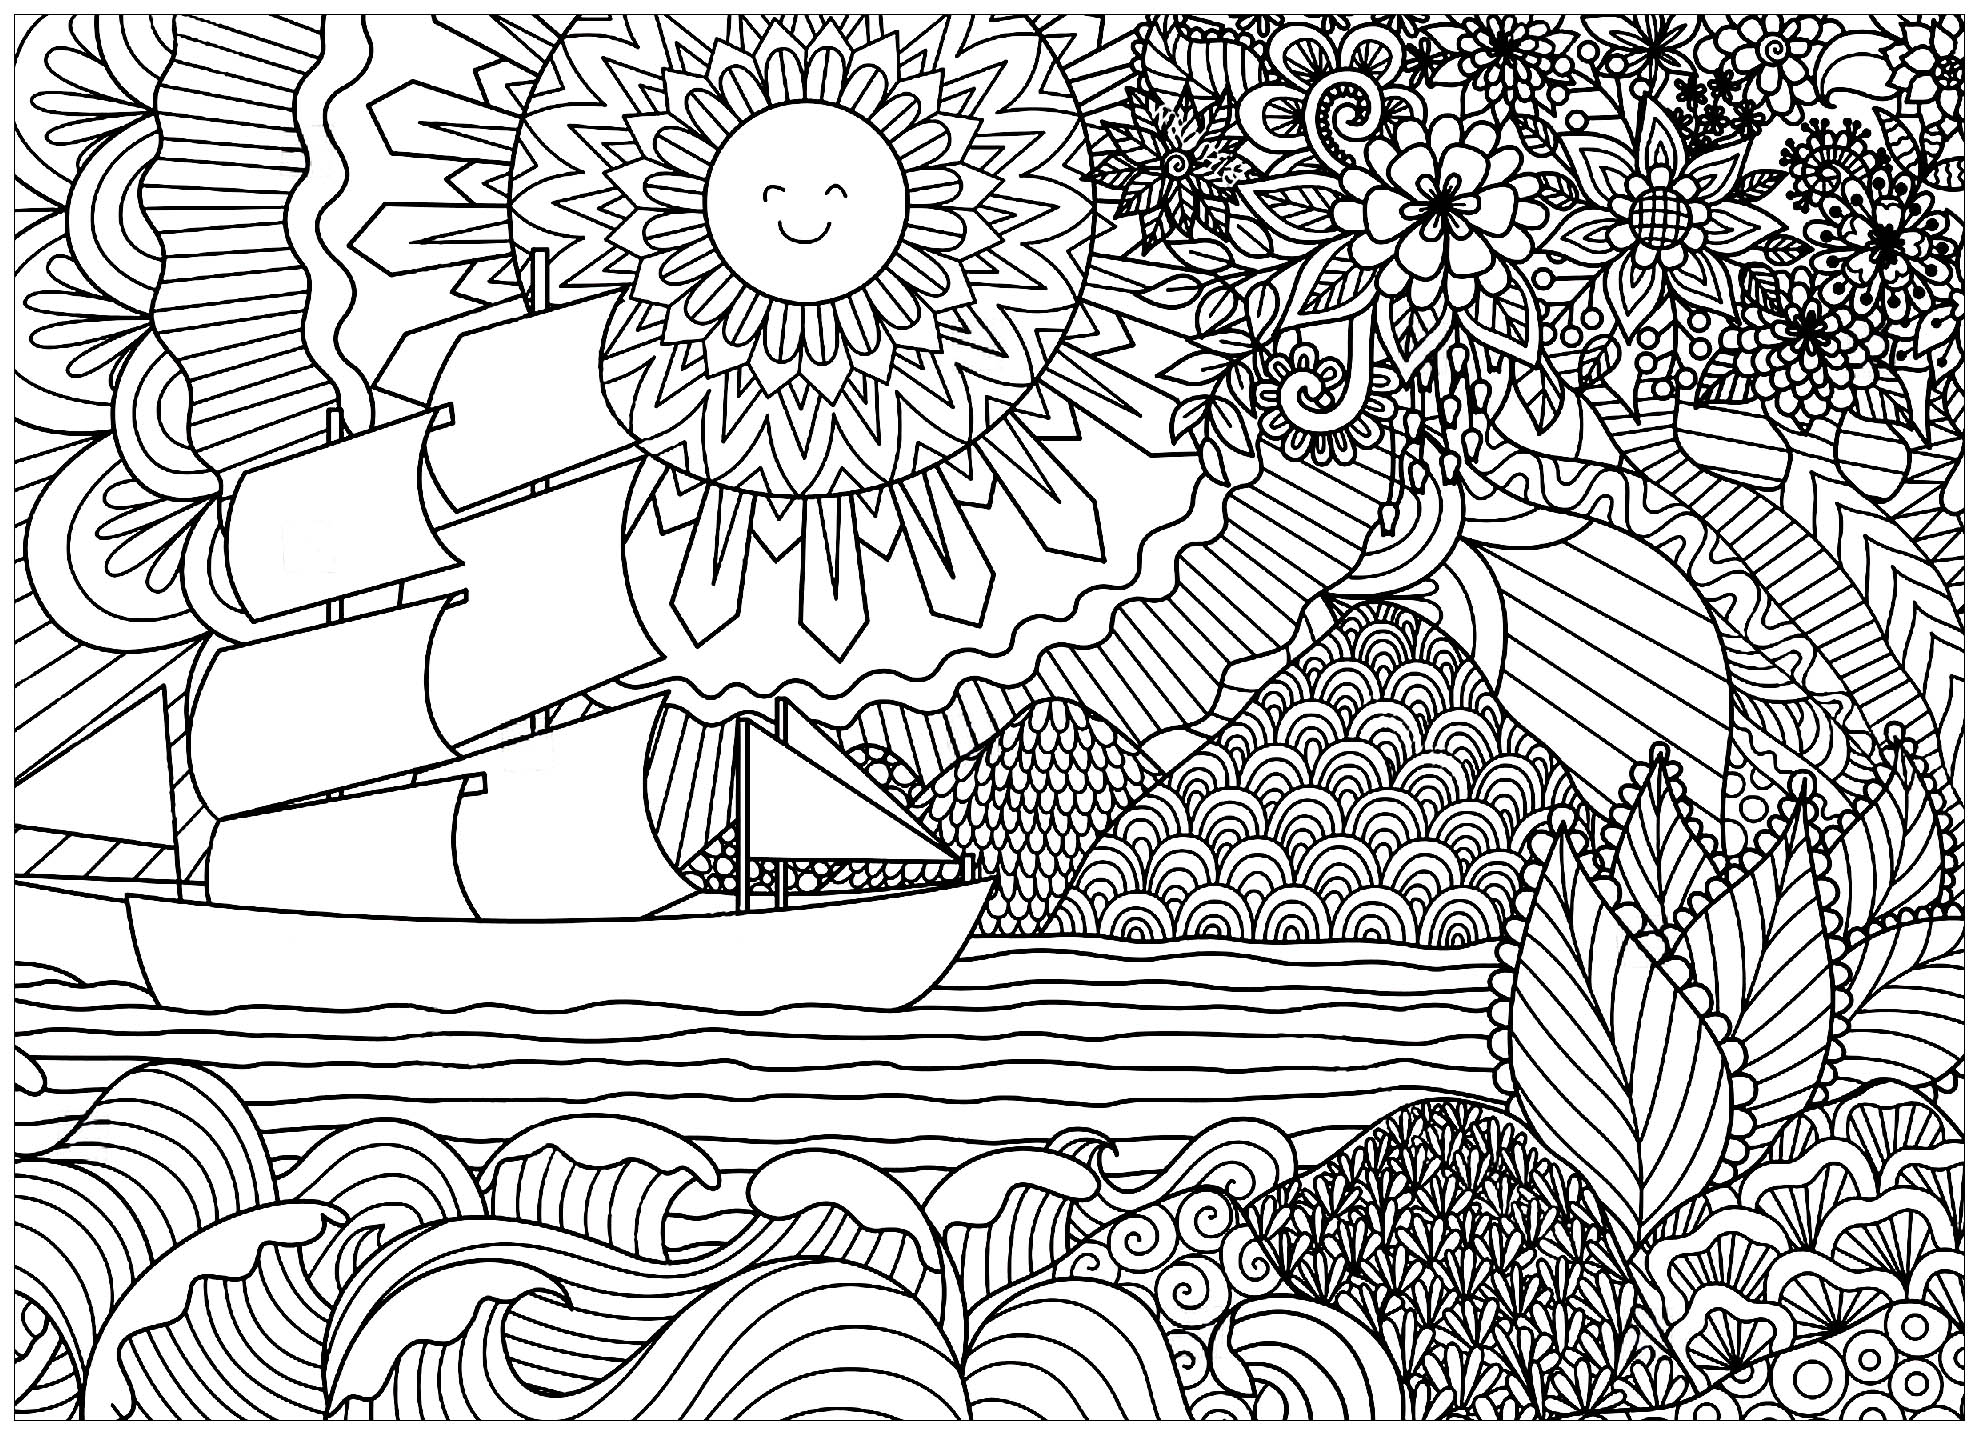 Coloring Pages for Teens - coloring.rocks!